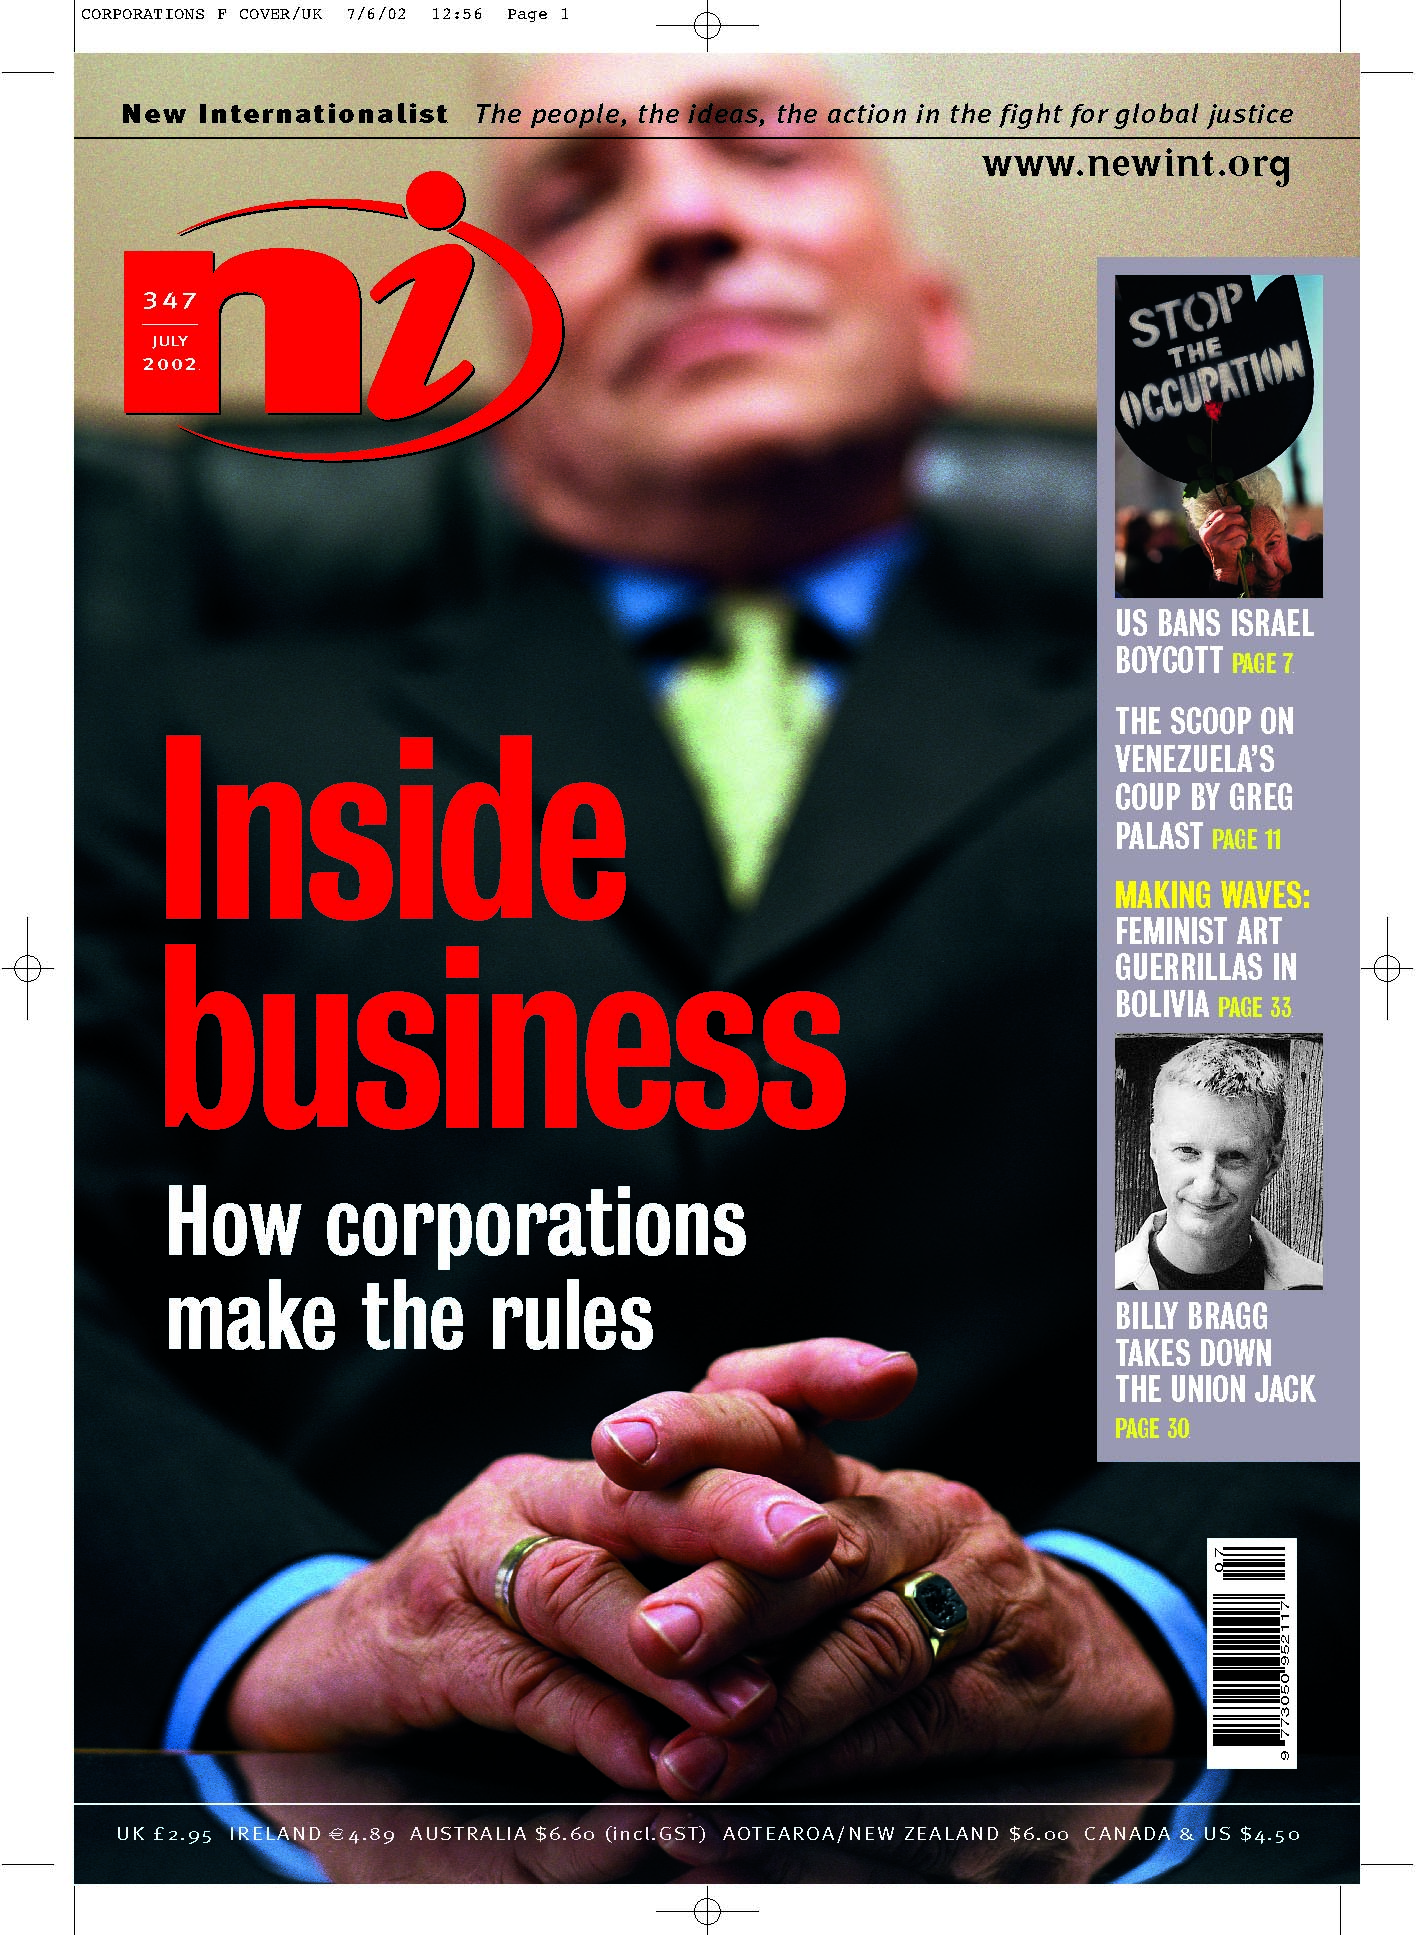 New Internationalist issue 347 magazine cover